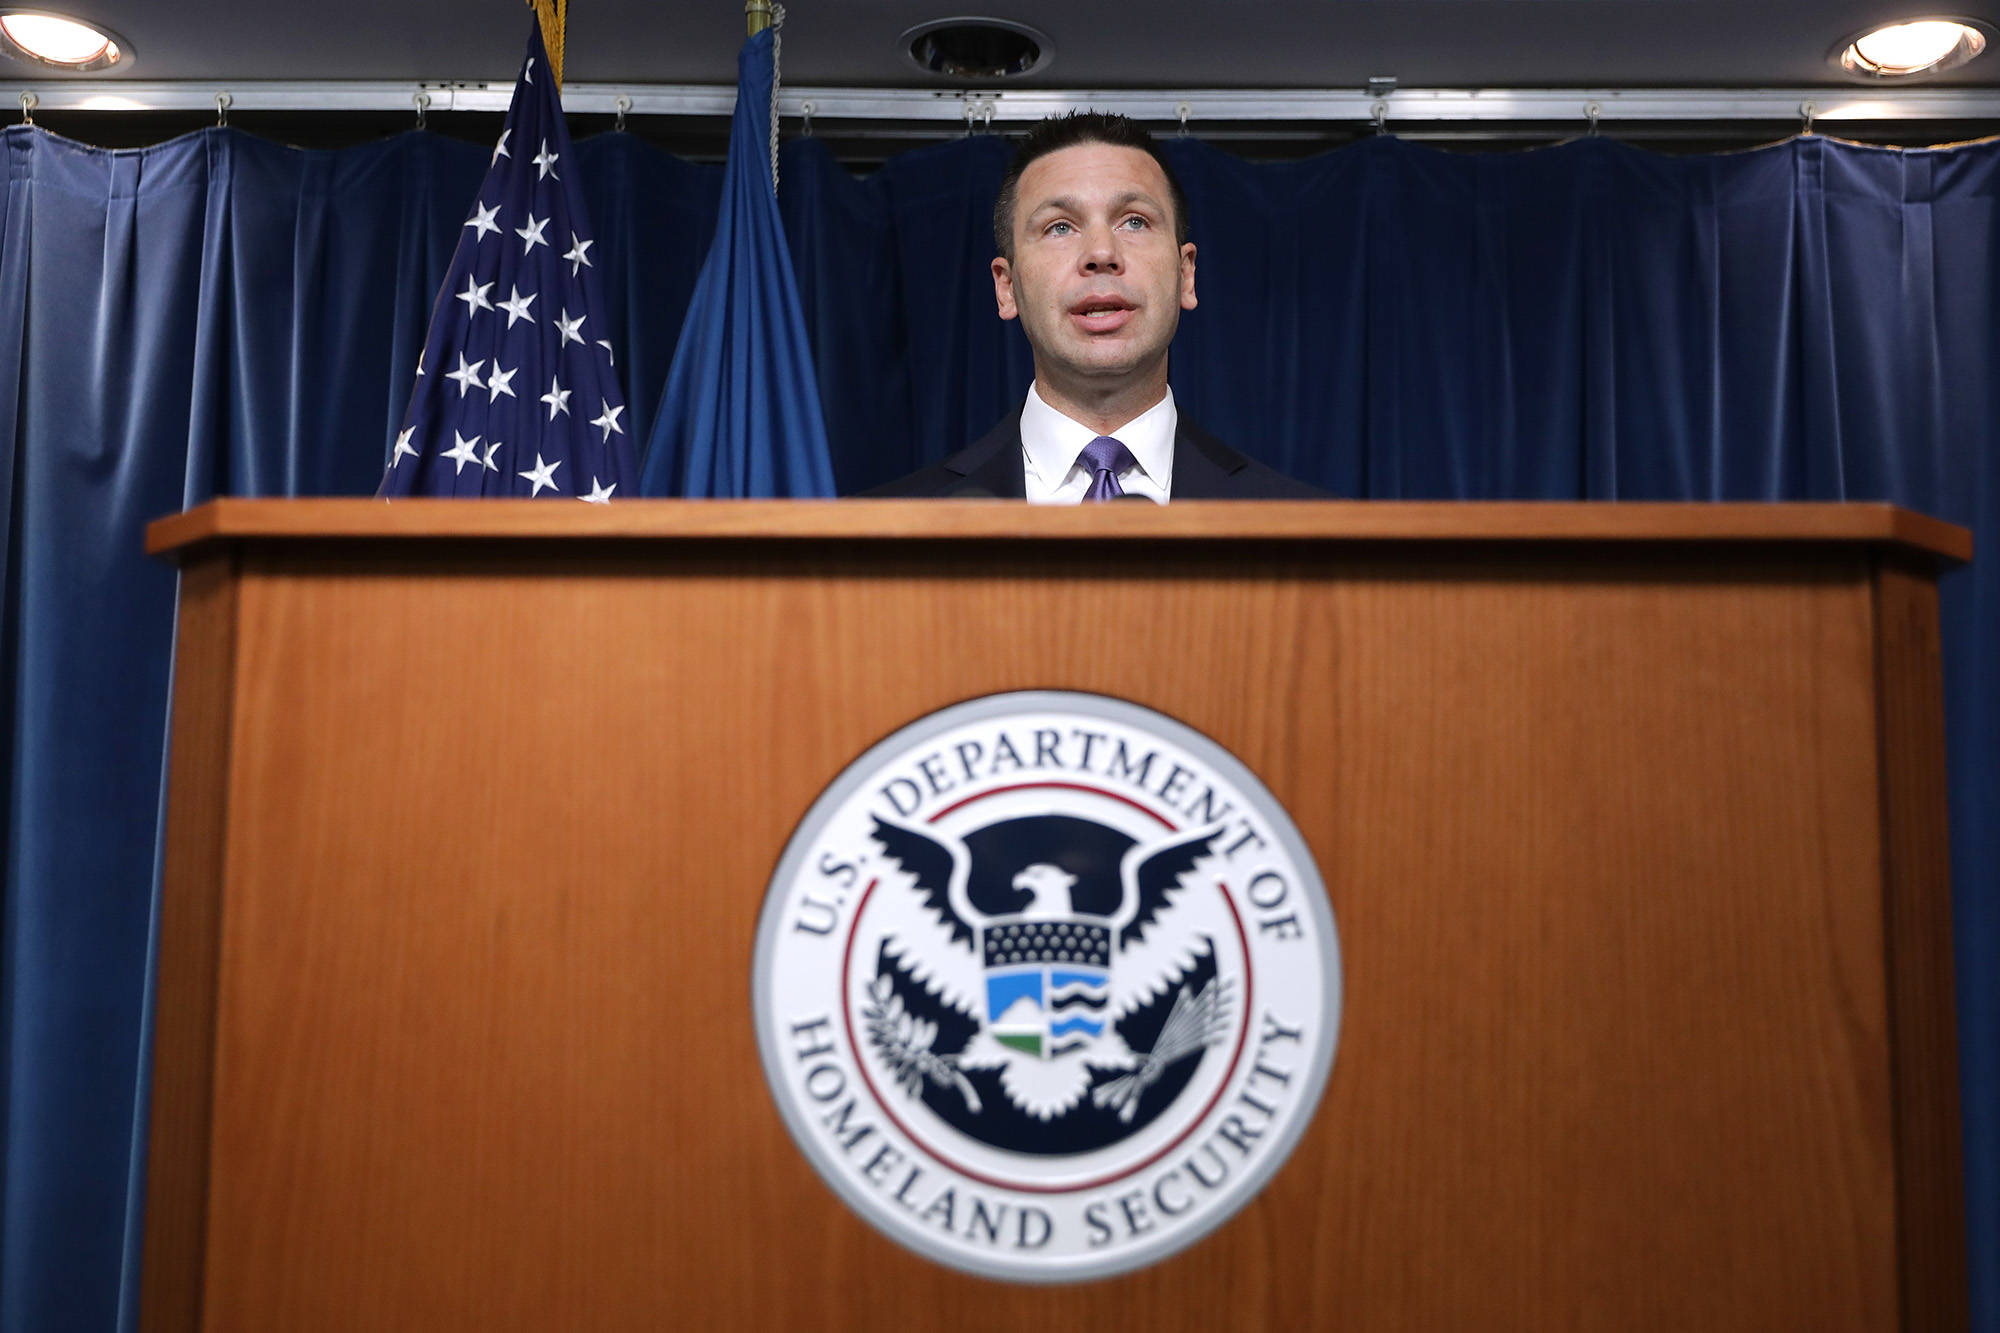 Department of Homeland Security acting Secretary Kevin McAleenan holds a news conference at the Ronald Reagan Building on August 21, 2019, in Washington, D.C. (Chip Somodevilla/Getty Images/TNS)